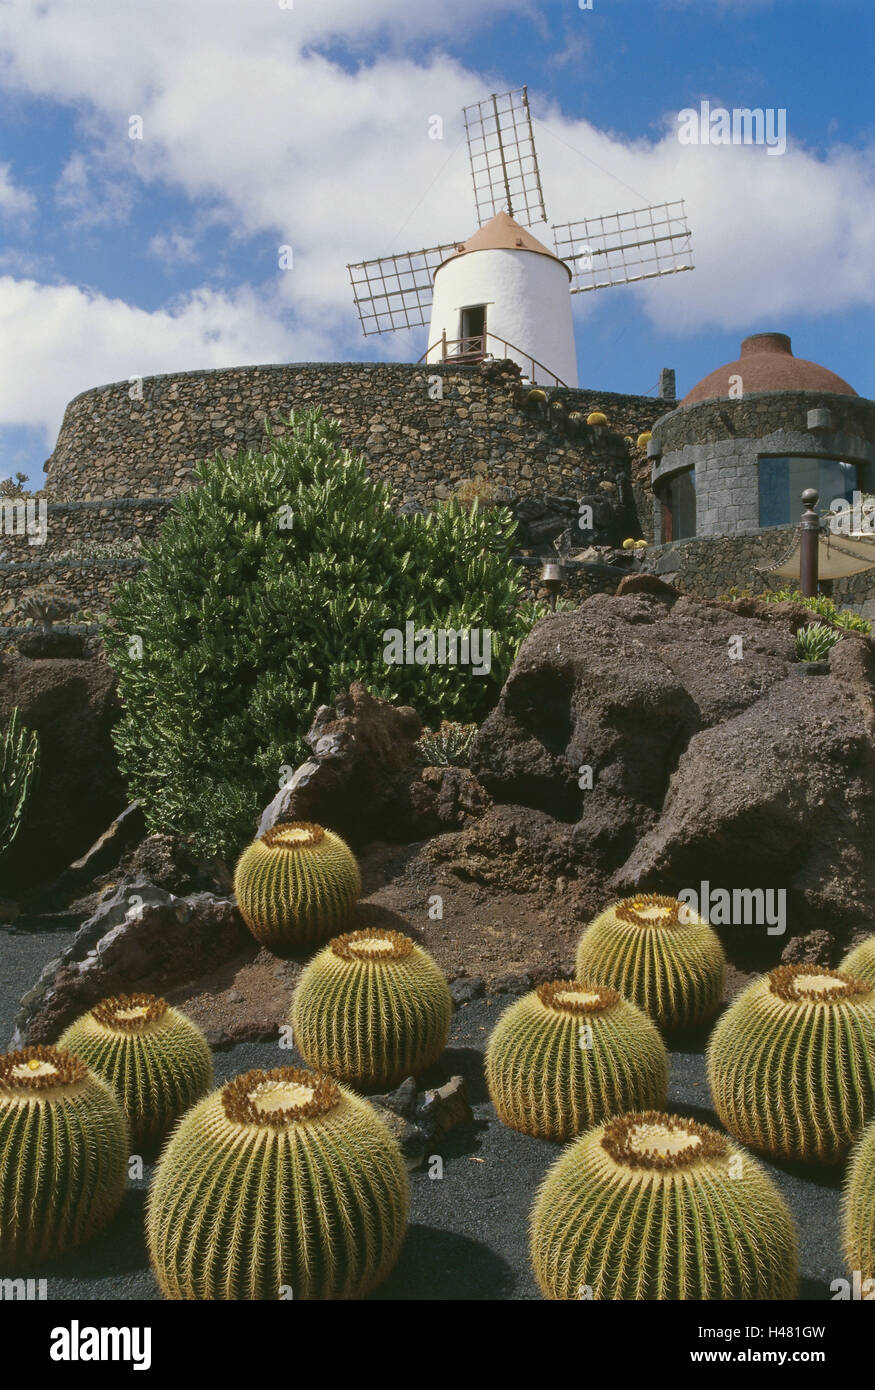 spain the canaries island lanzarote guatize jardin de cactus mill